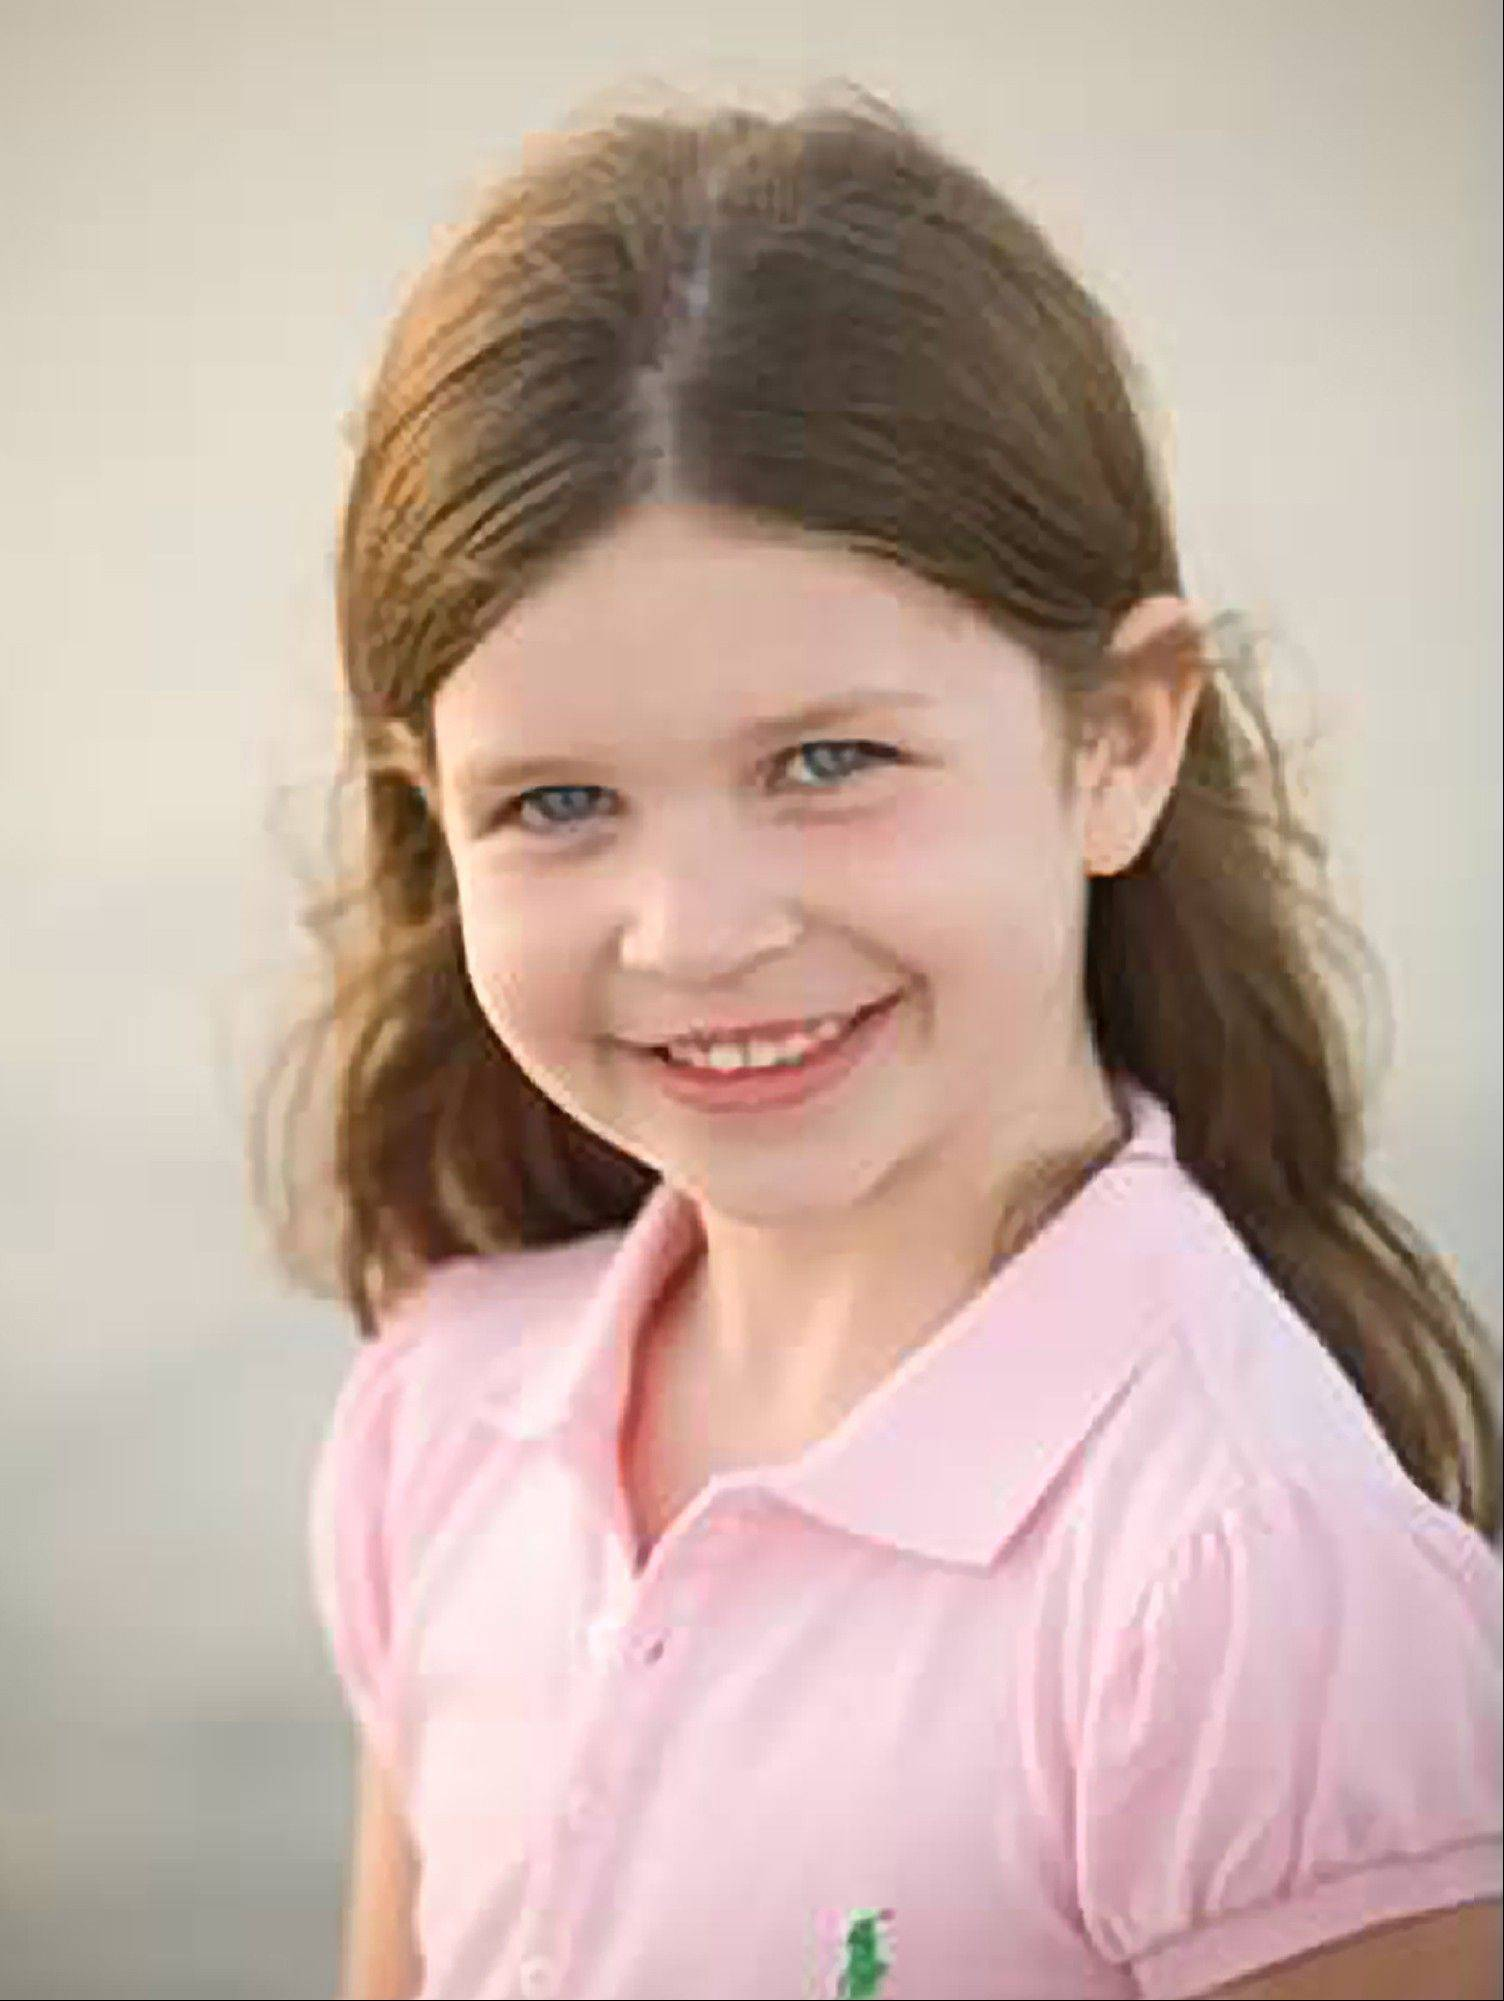 This photo provided by the family shows Jessica Rekos. Rekos, 6, was killed Friday, Dec. 14, 2012, when a gunman opened fire at Sandy Hook Elementary School, in Newtown, Conn., killing 26 children and adults at the school, before killing himself.